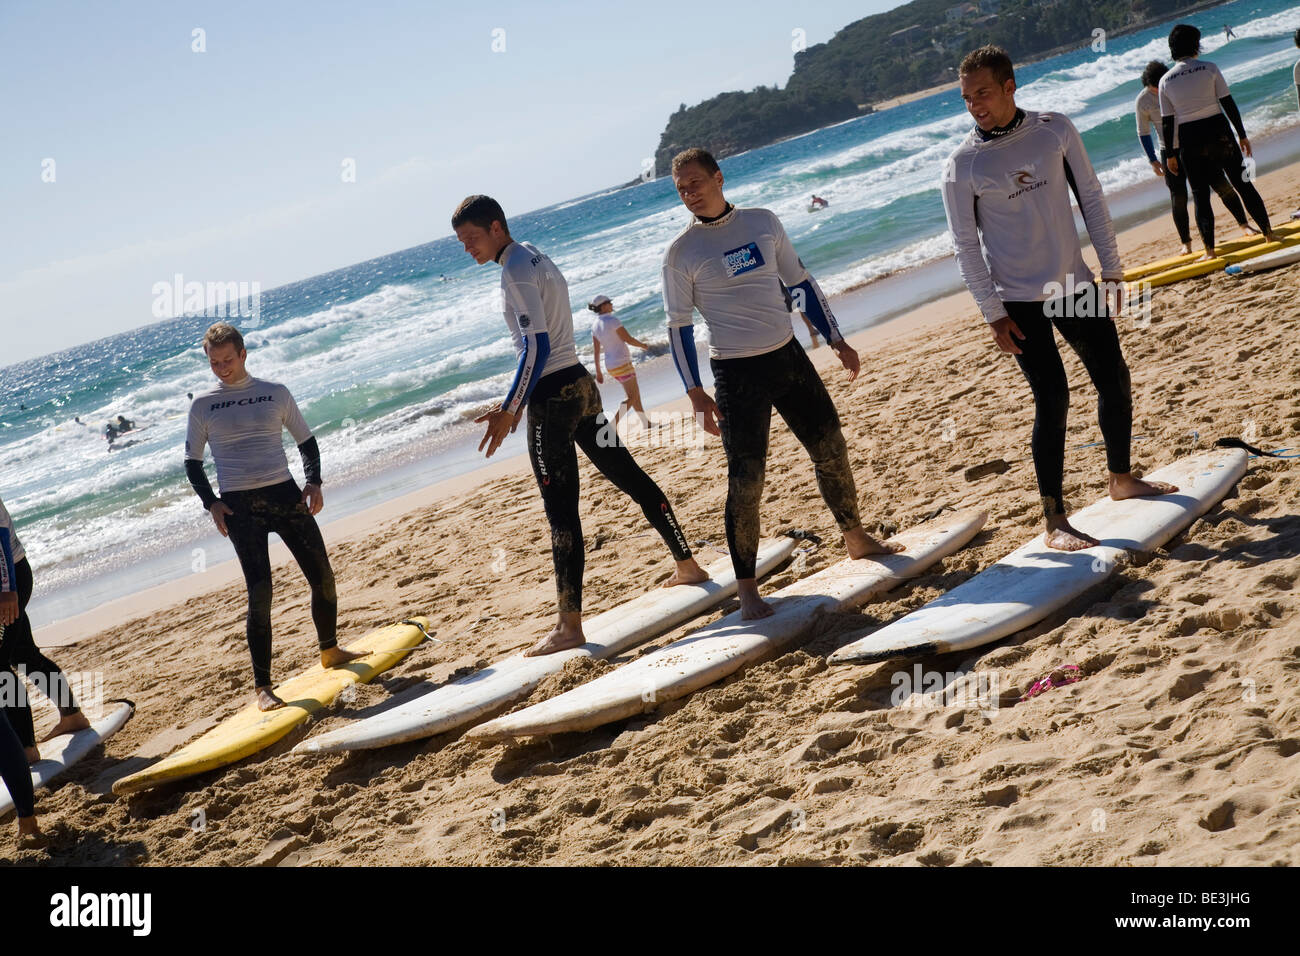 Surfing lesson on the sands of Manly Beach. Sydney, New South Wales, AUSTRALIA - Stock Image